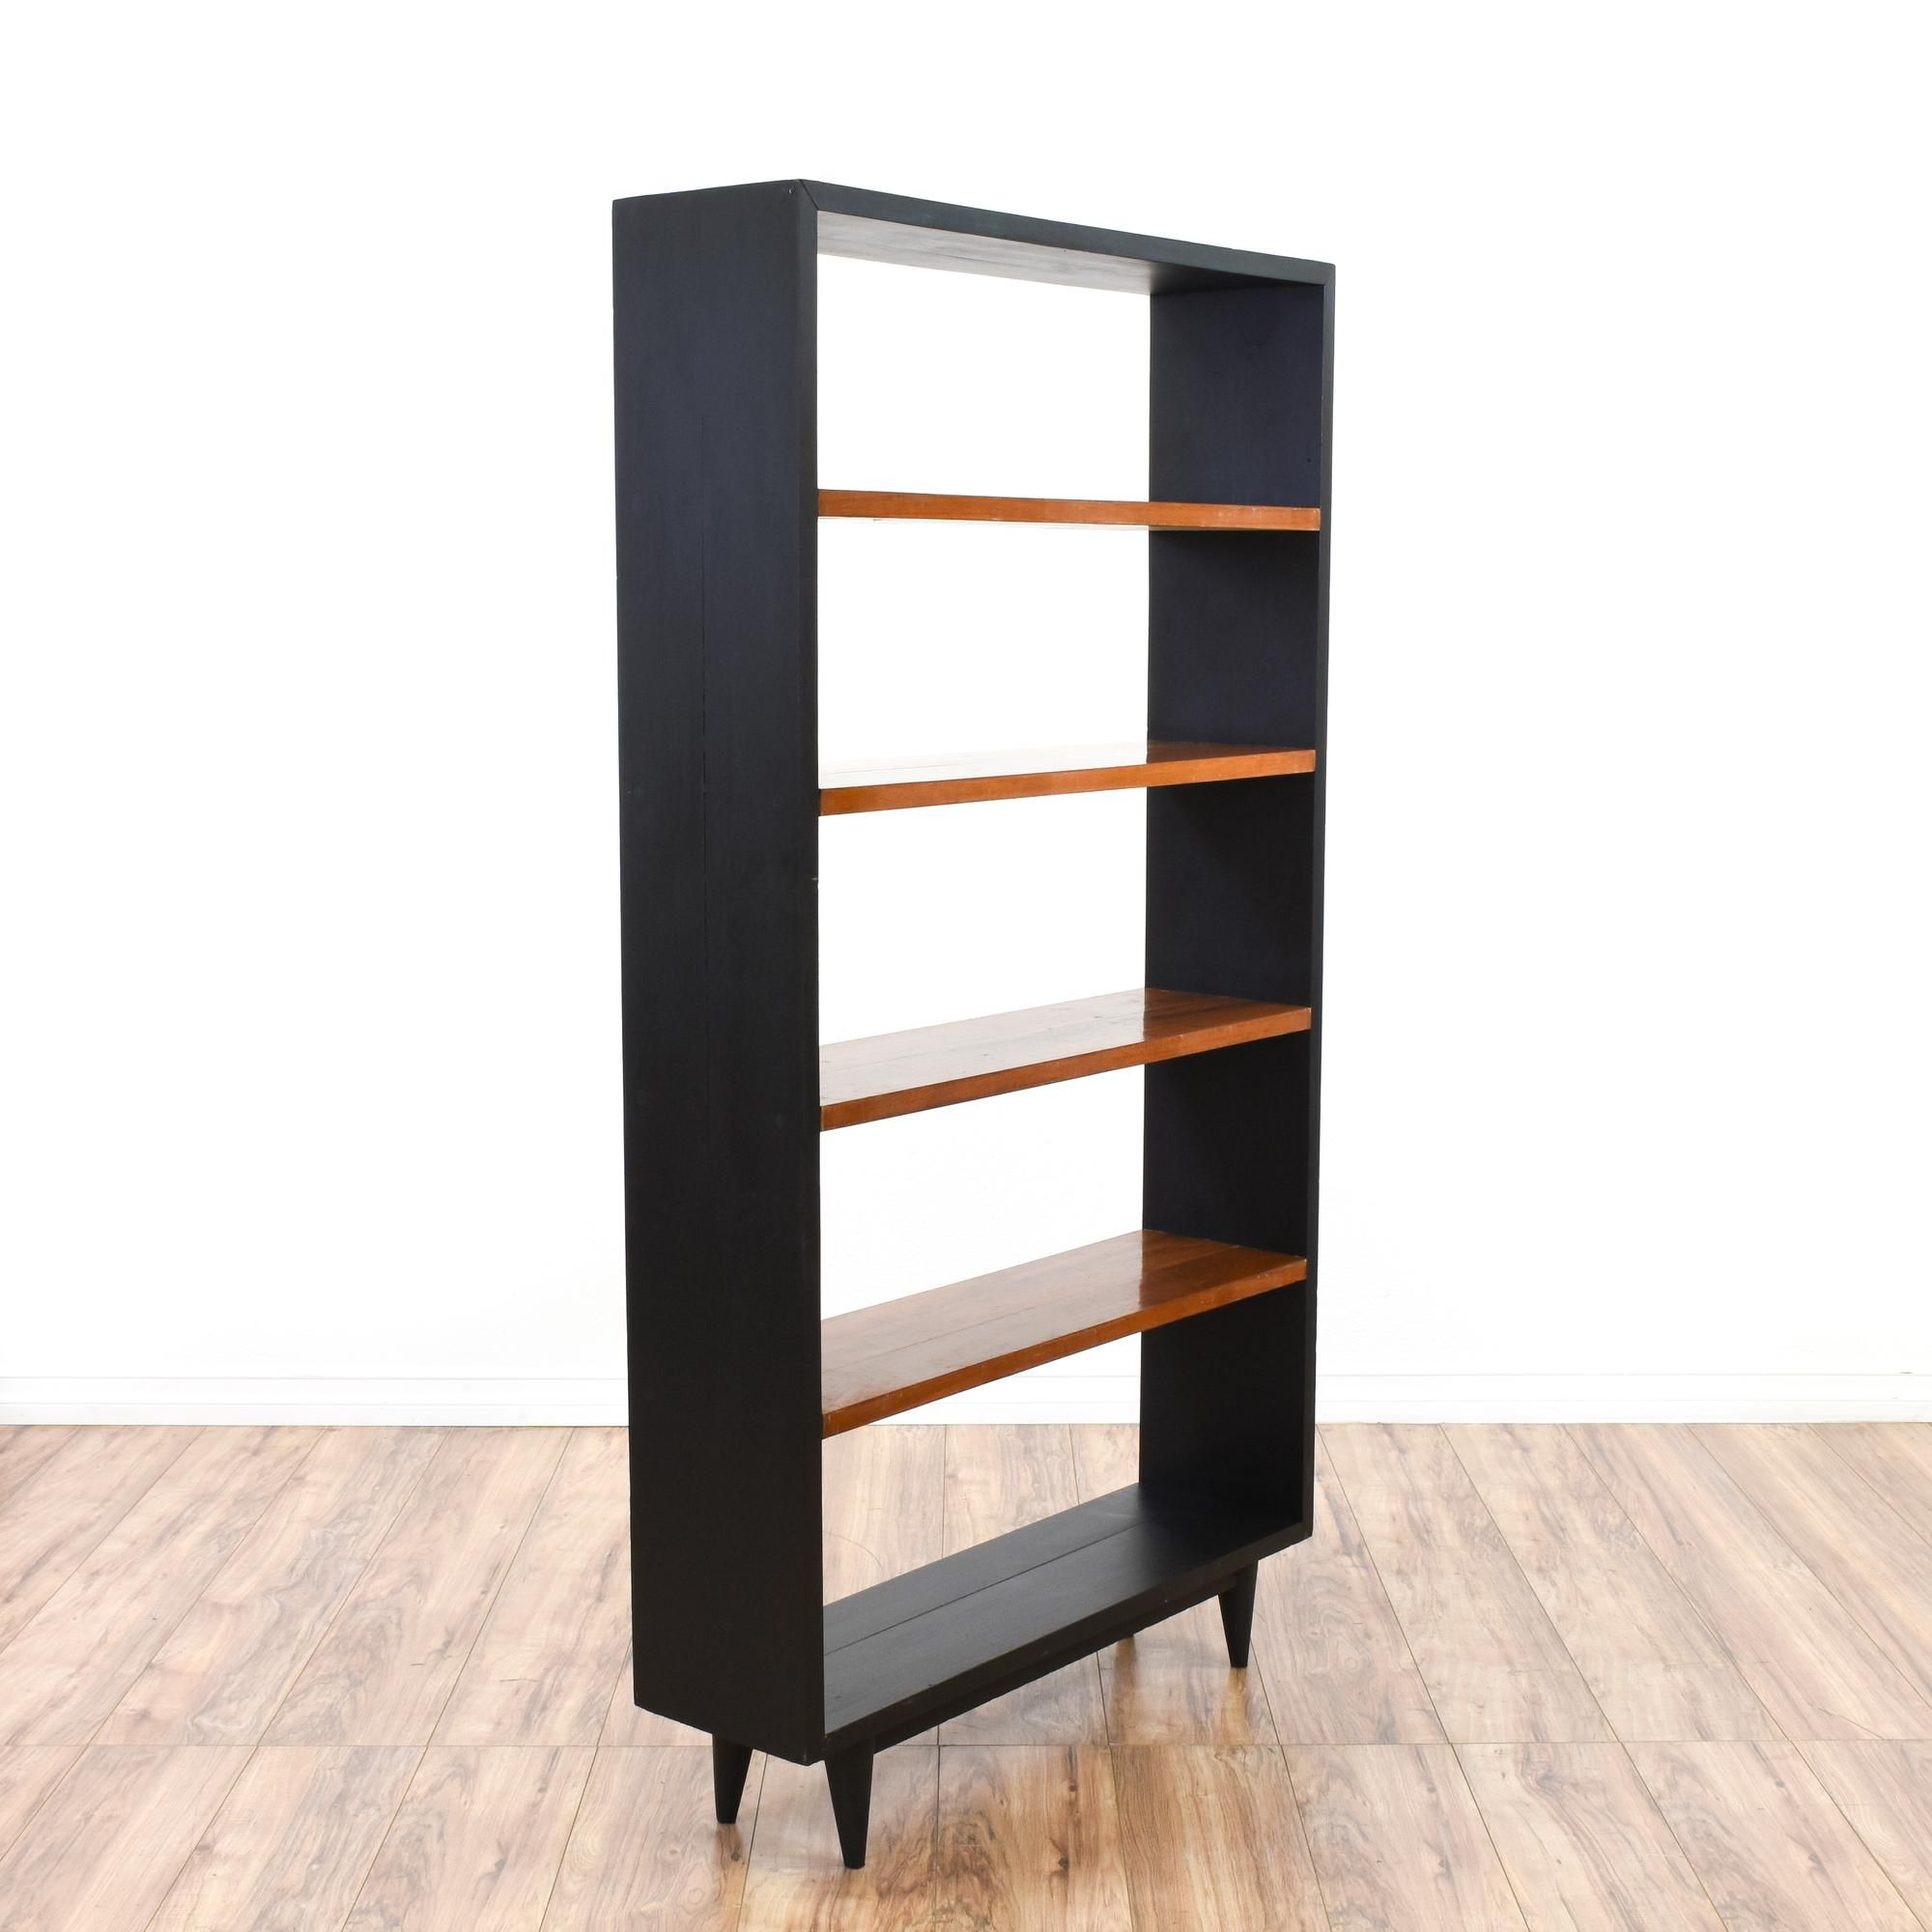 This mid century modern bookshelf is featured in a solid wood with a